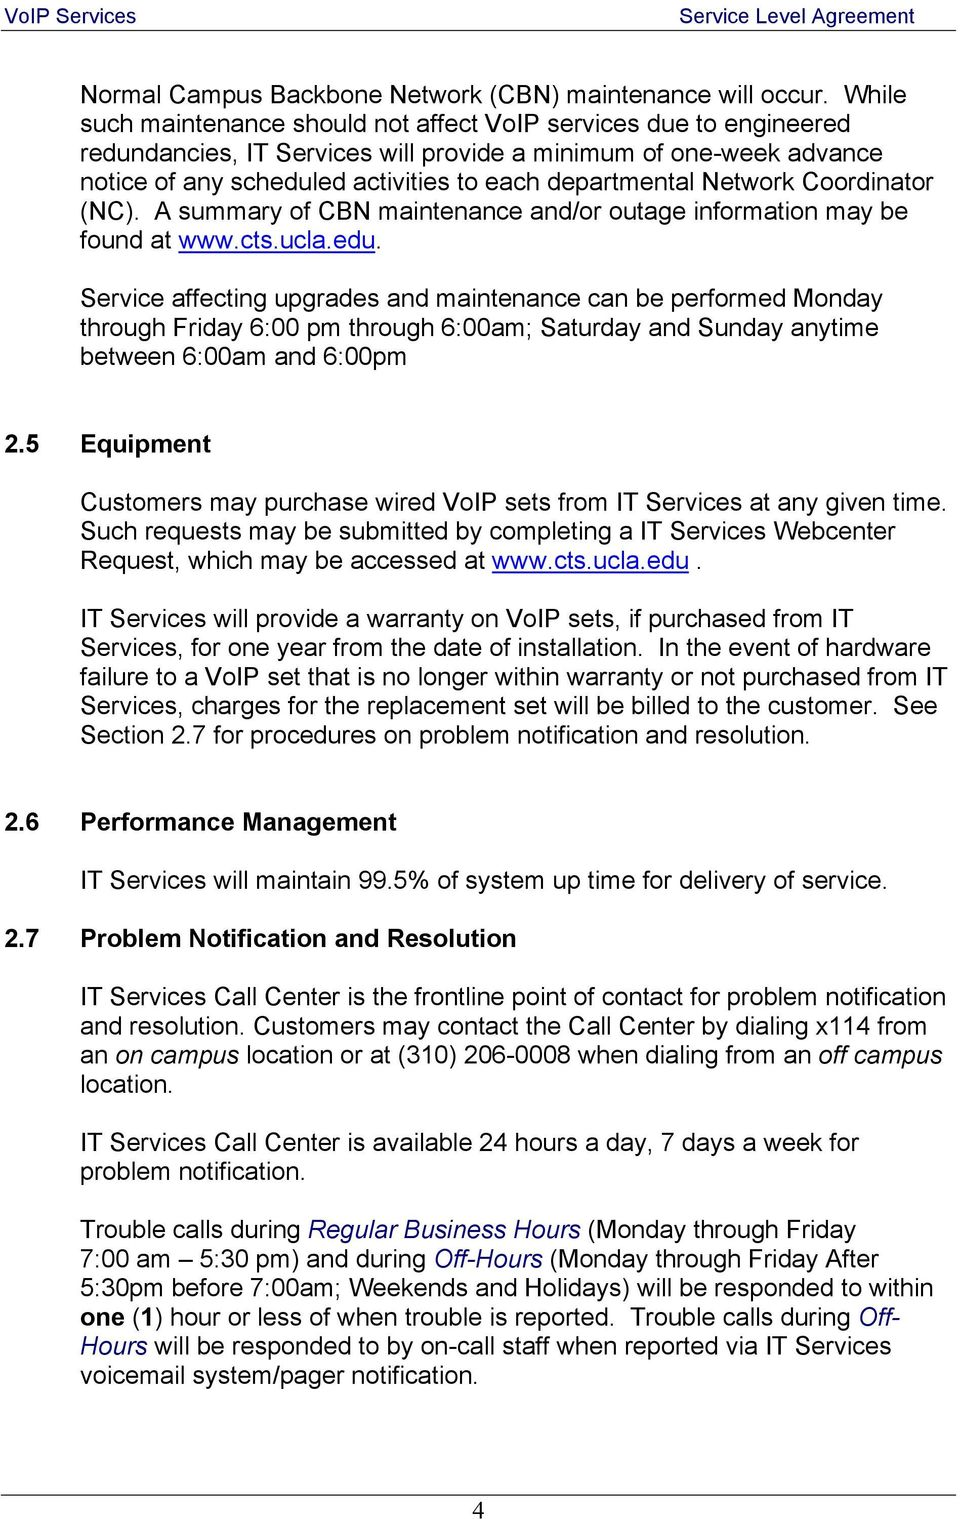 Network Coordinator (NC). A summary of CBN maintenance and/or outage information may be found at www.cts.ucla.edu.